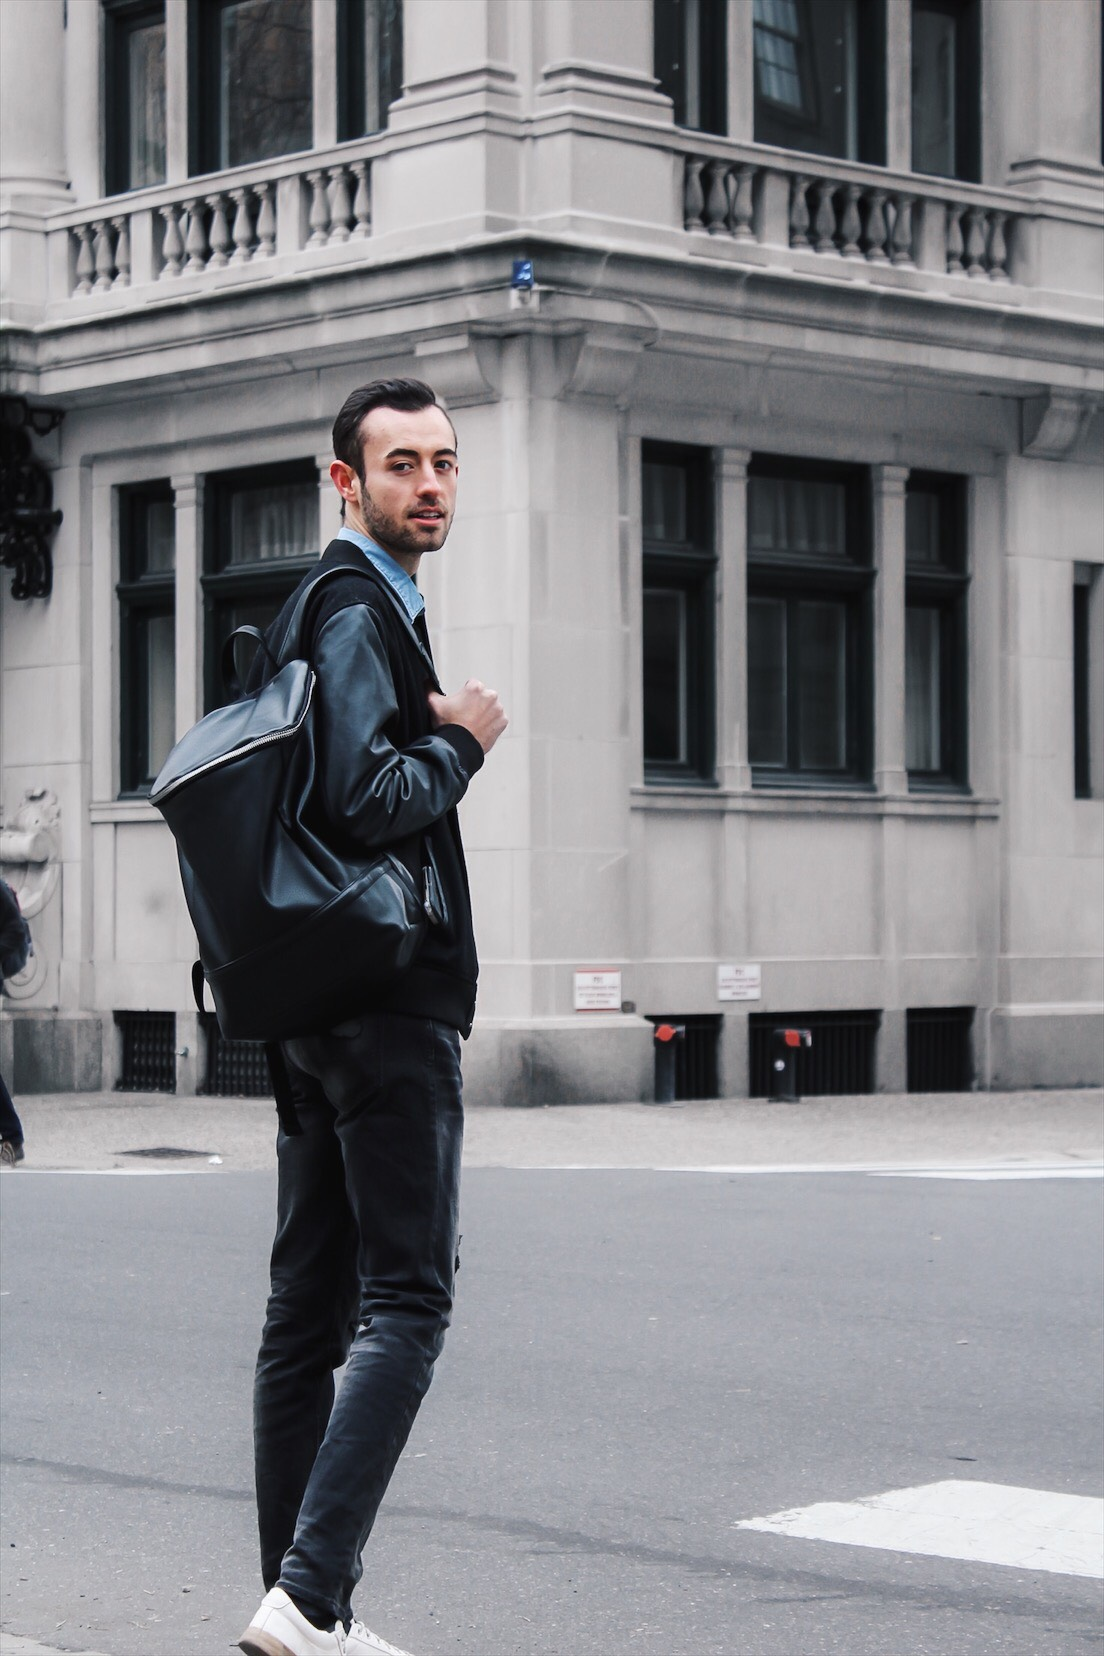 OUR FAVORITE BACKPACK UNDER $50